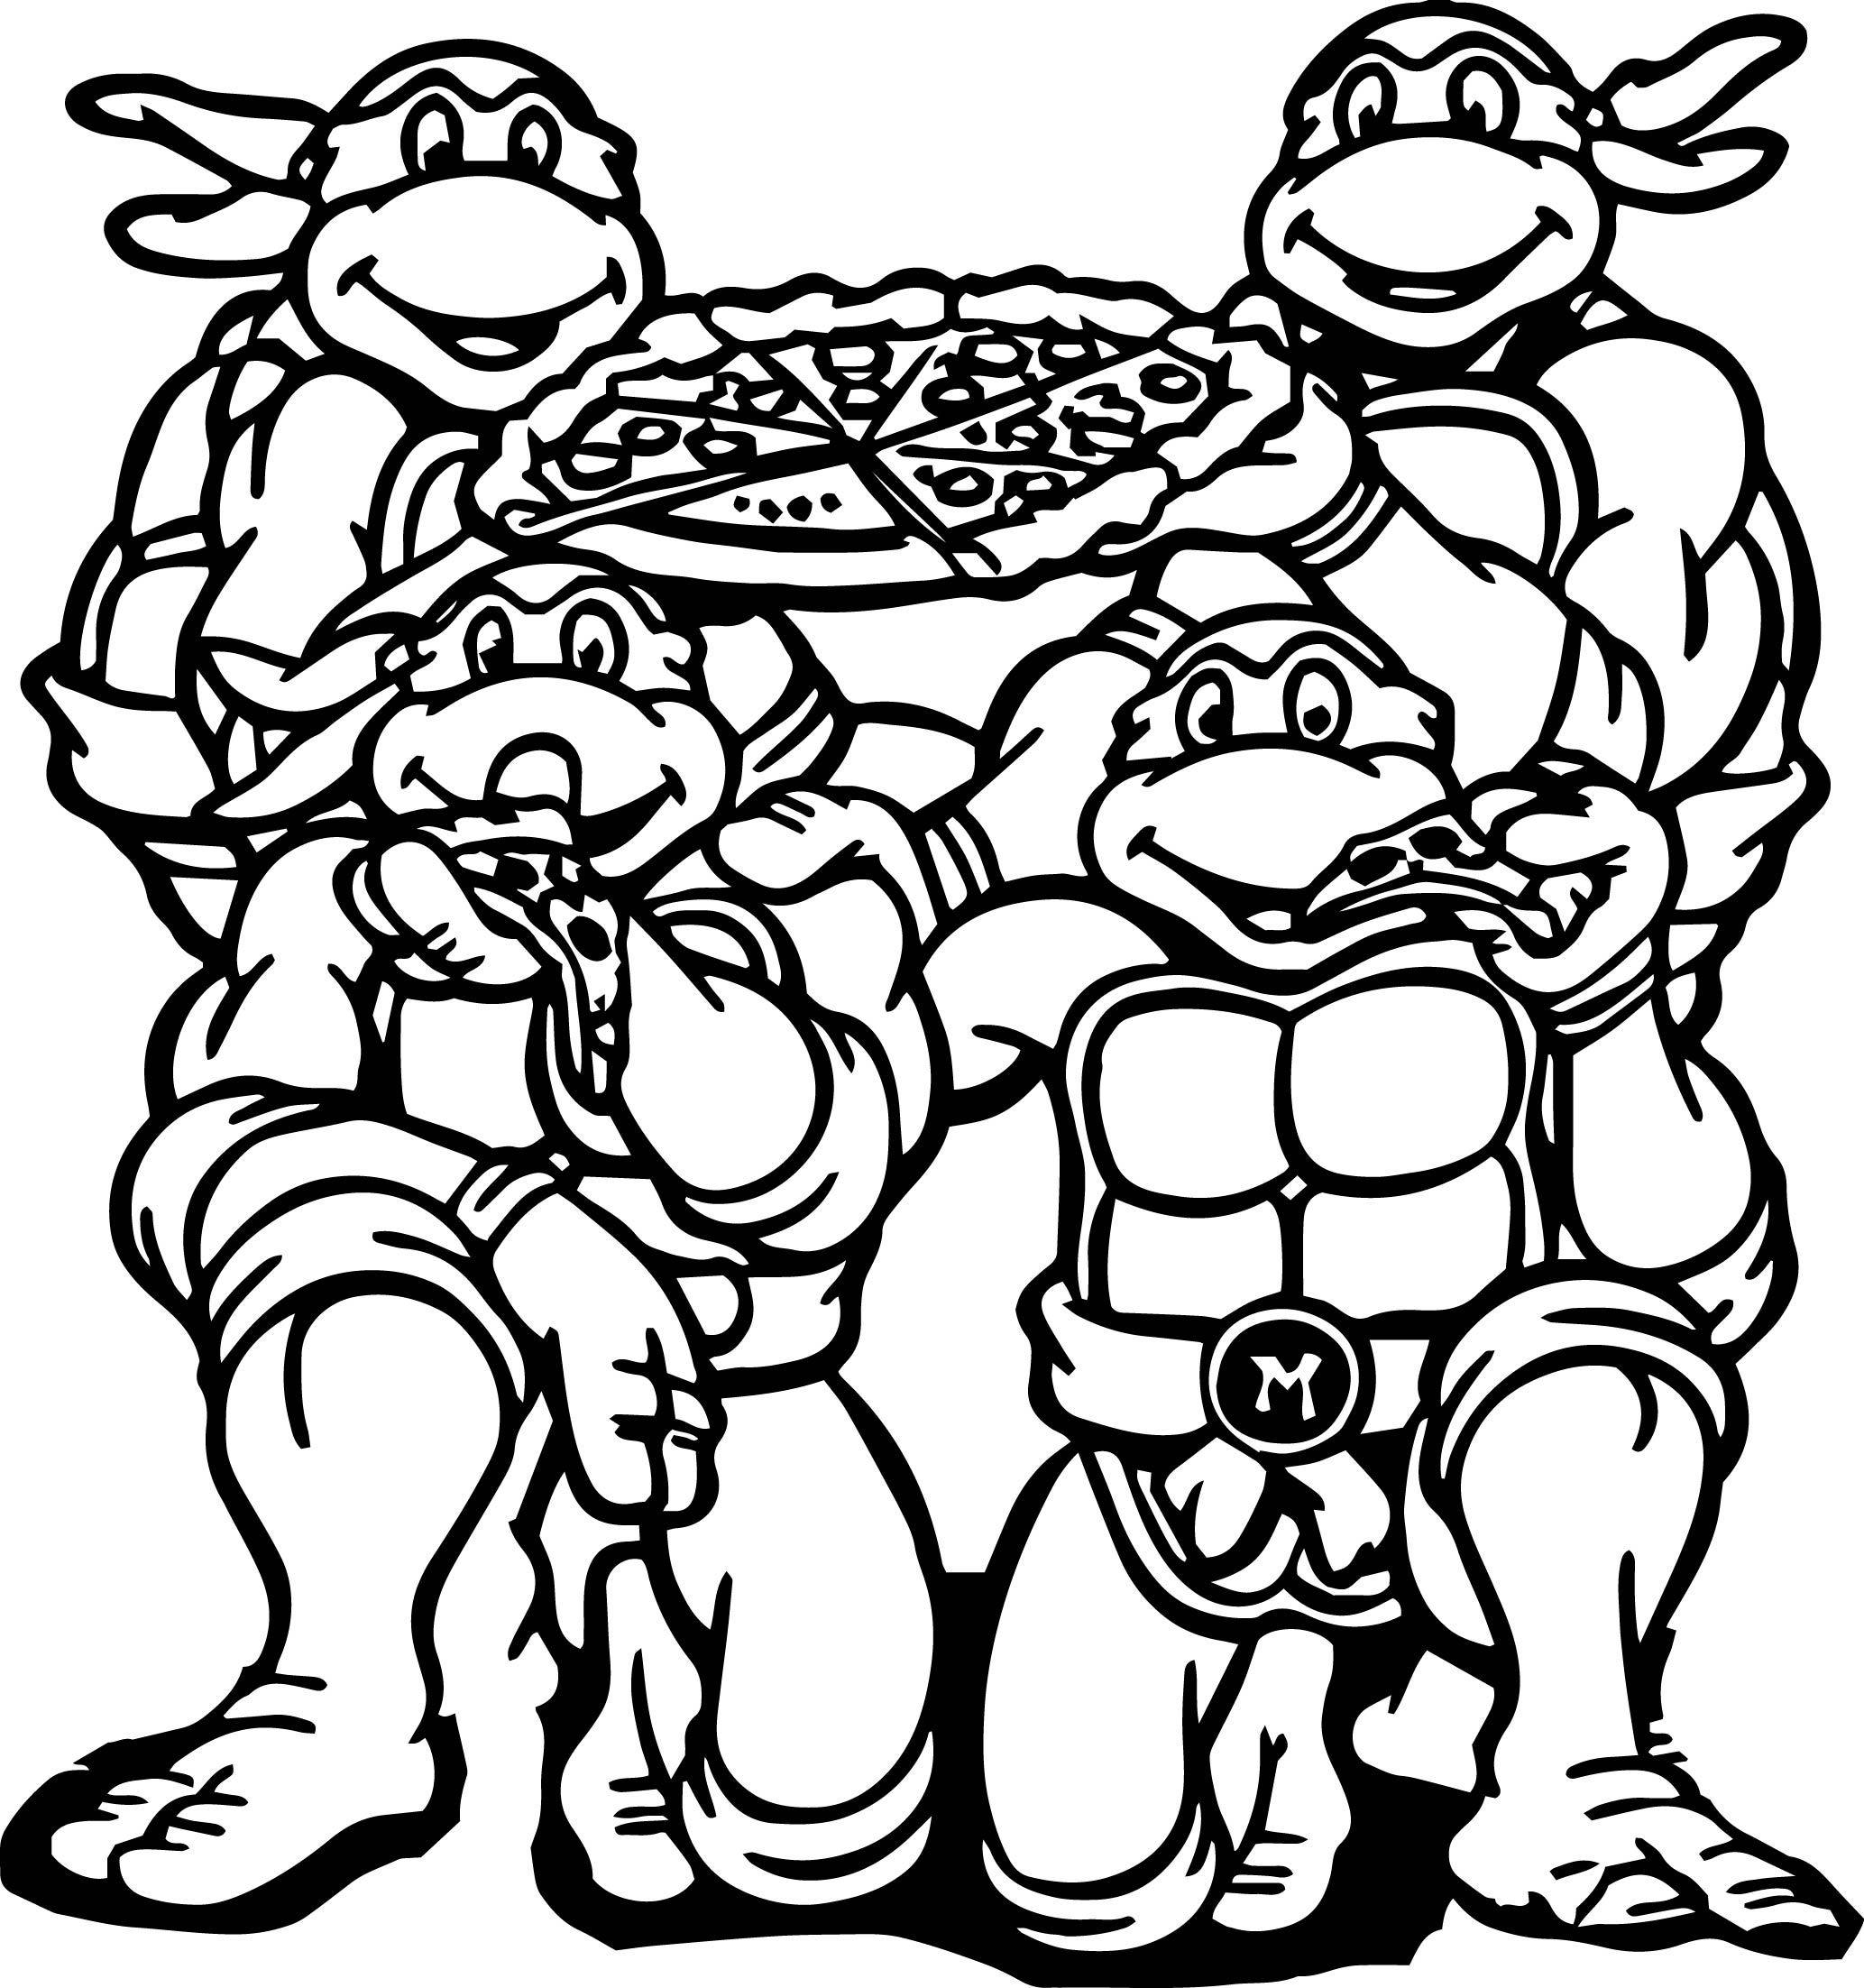 Tmnt 2012 Coloring Pages At Getdrawings Free Download